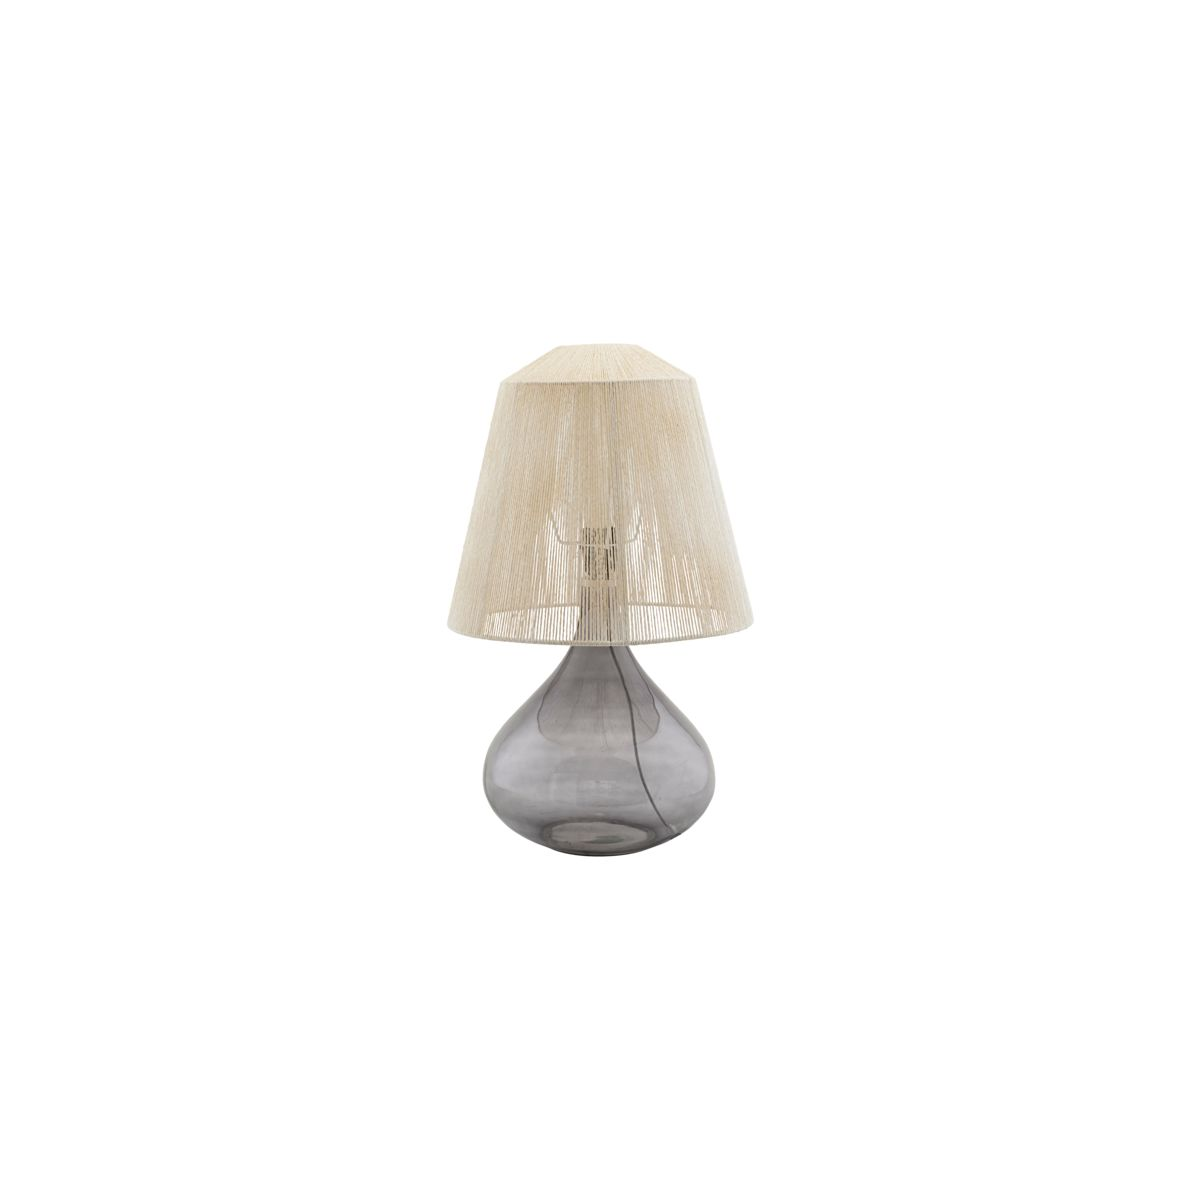 Manto lampshade cut out